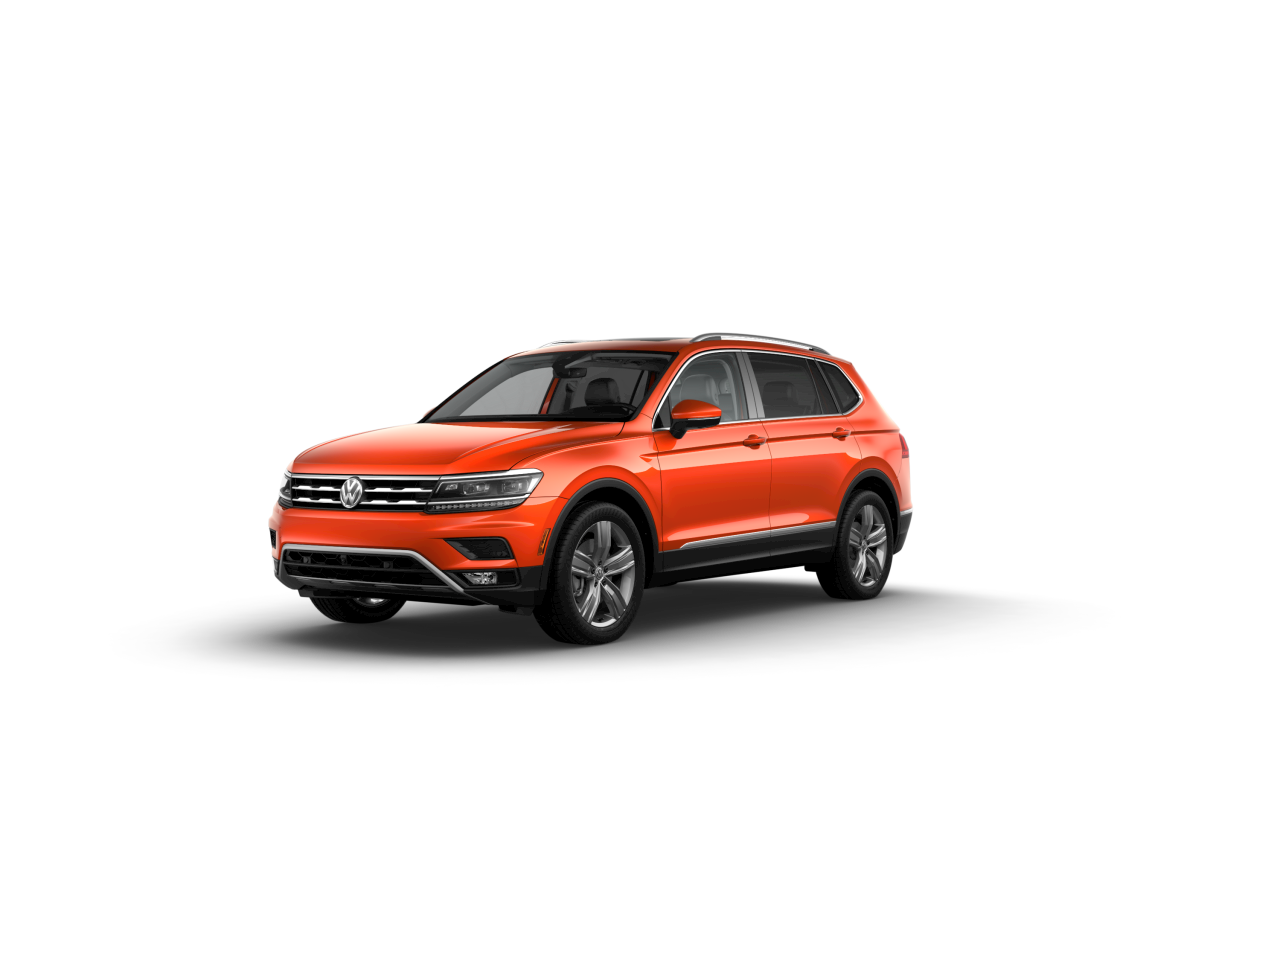 What colors does the new 2019 VW Tiguan come in?